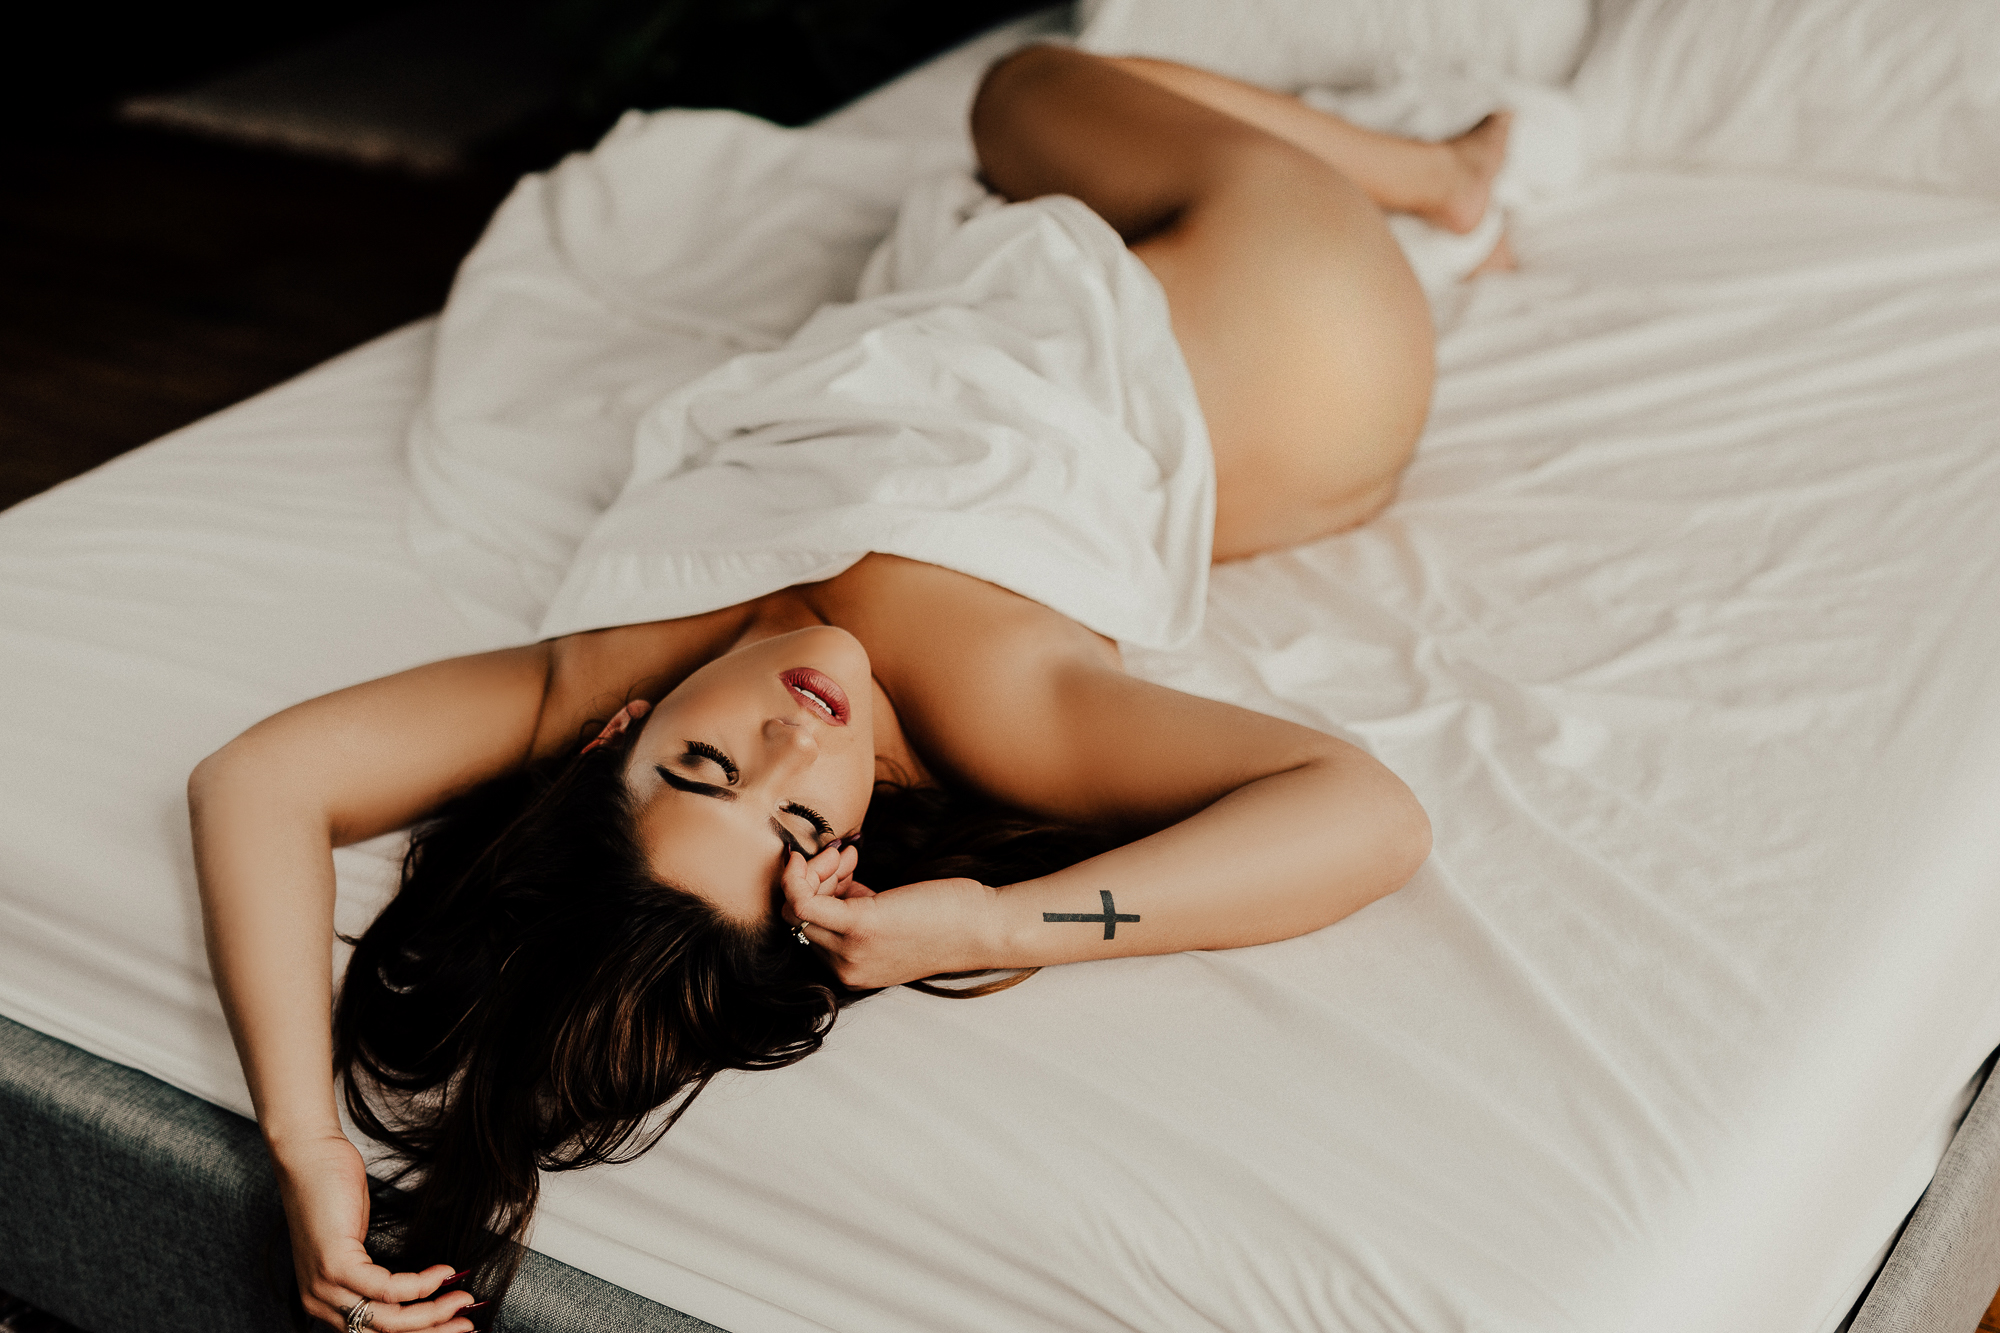 NM_Kansas_City_Boudoir_Indium148.jpg